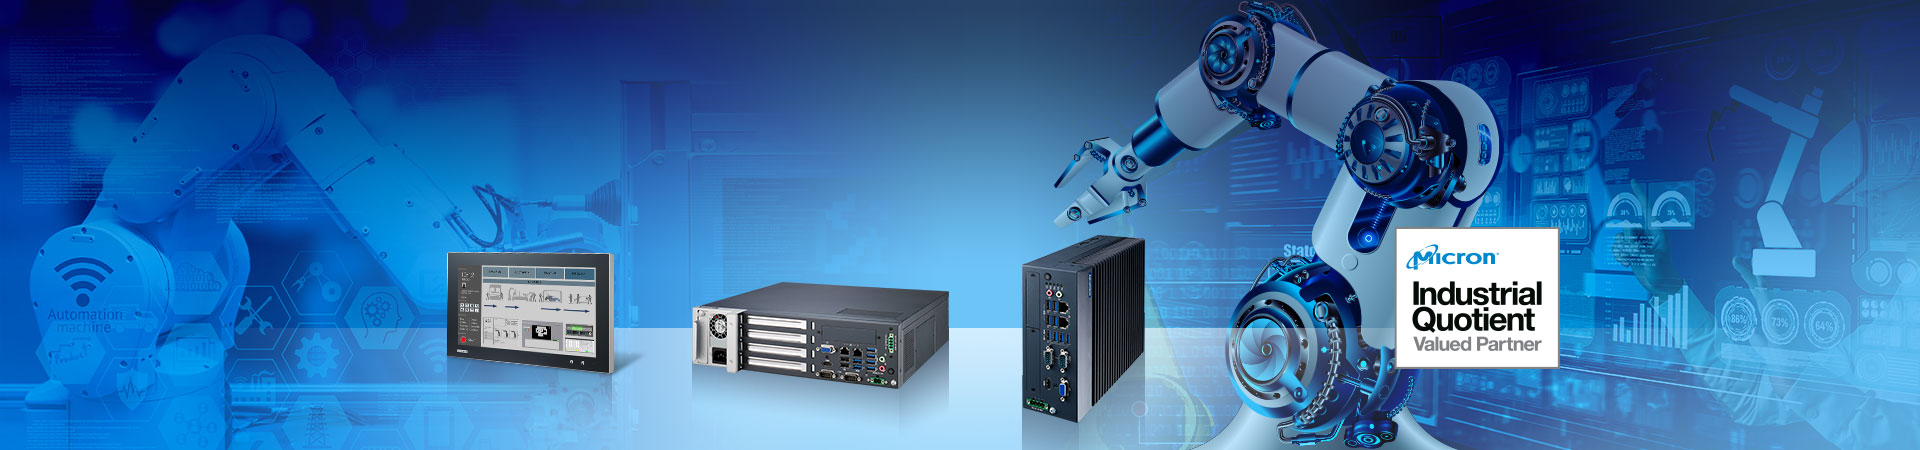 Building Reliable, High Endurance, Cost-Effective Industrial System